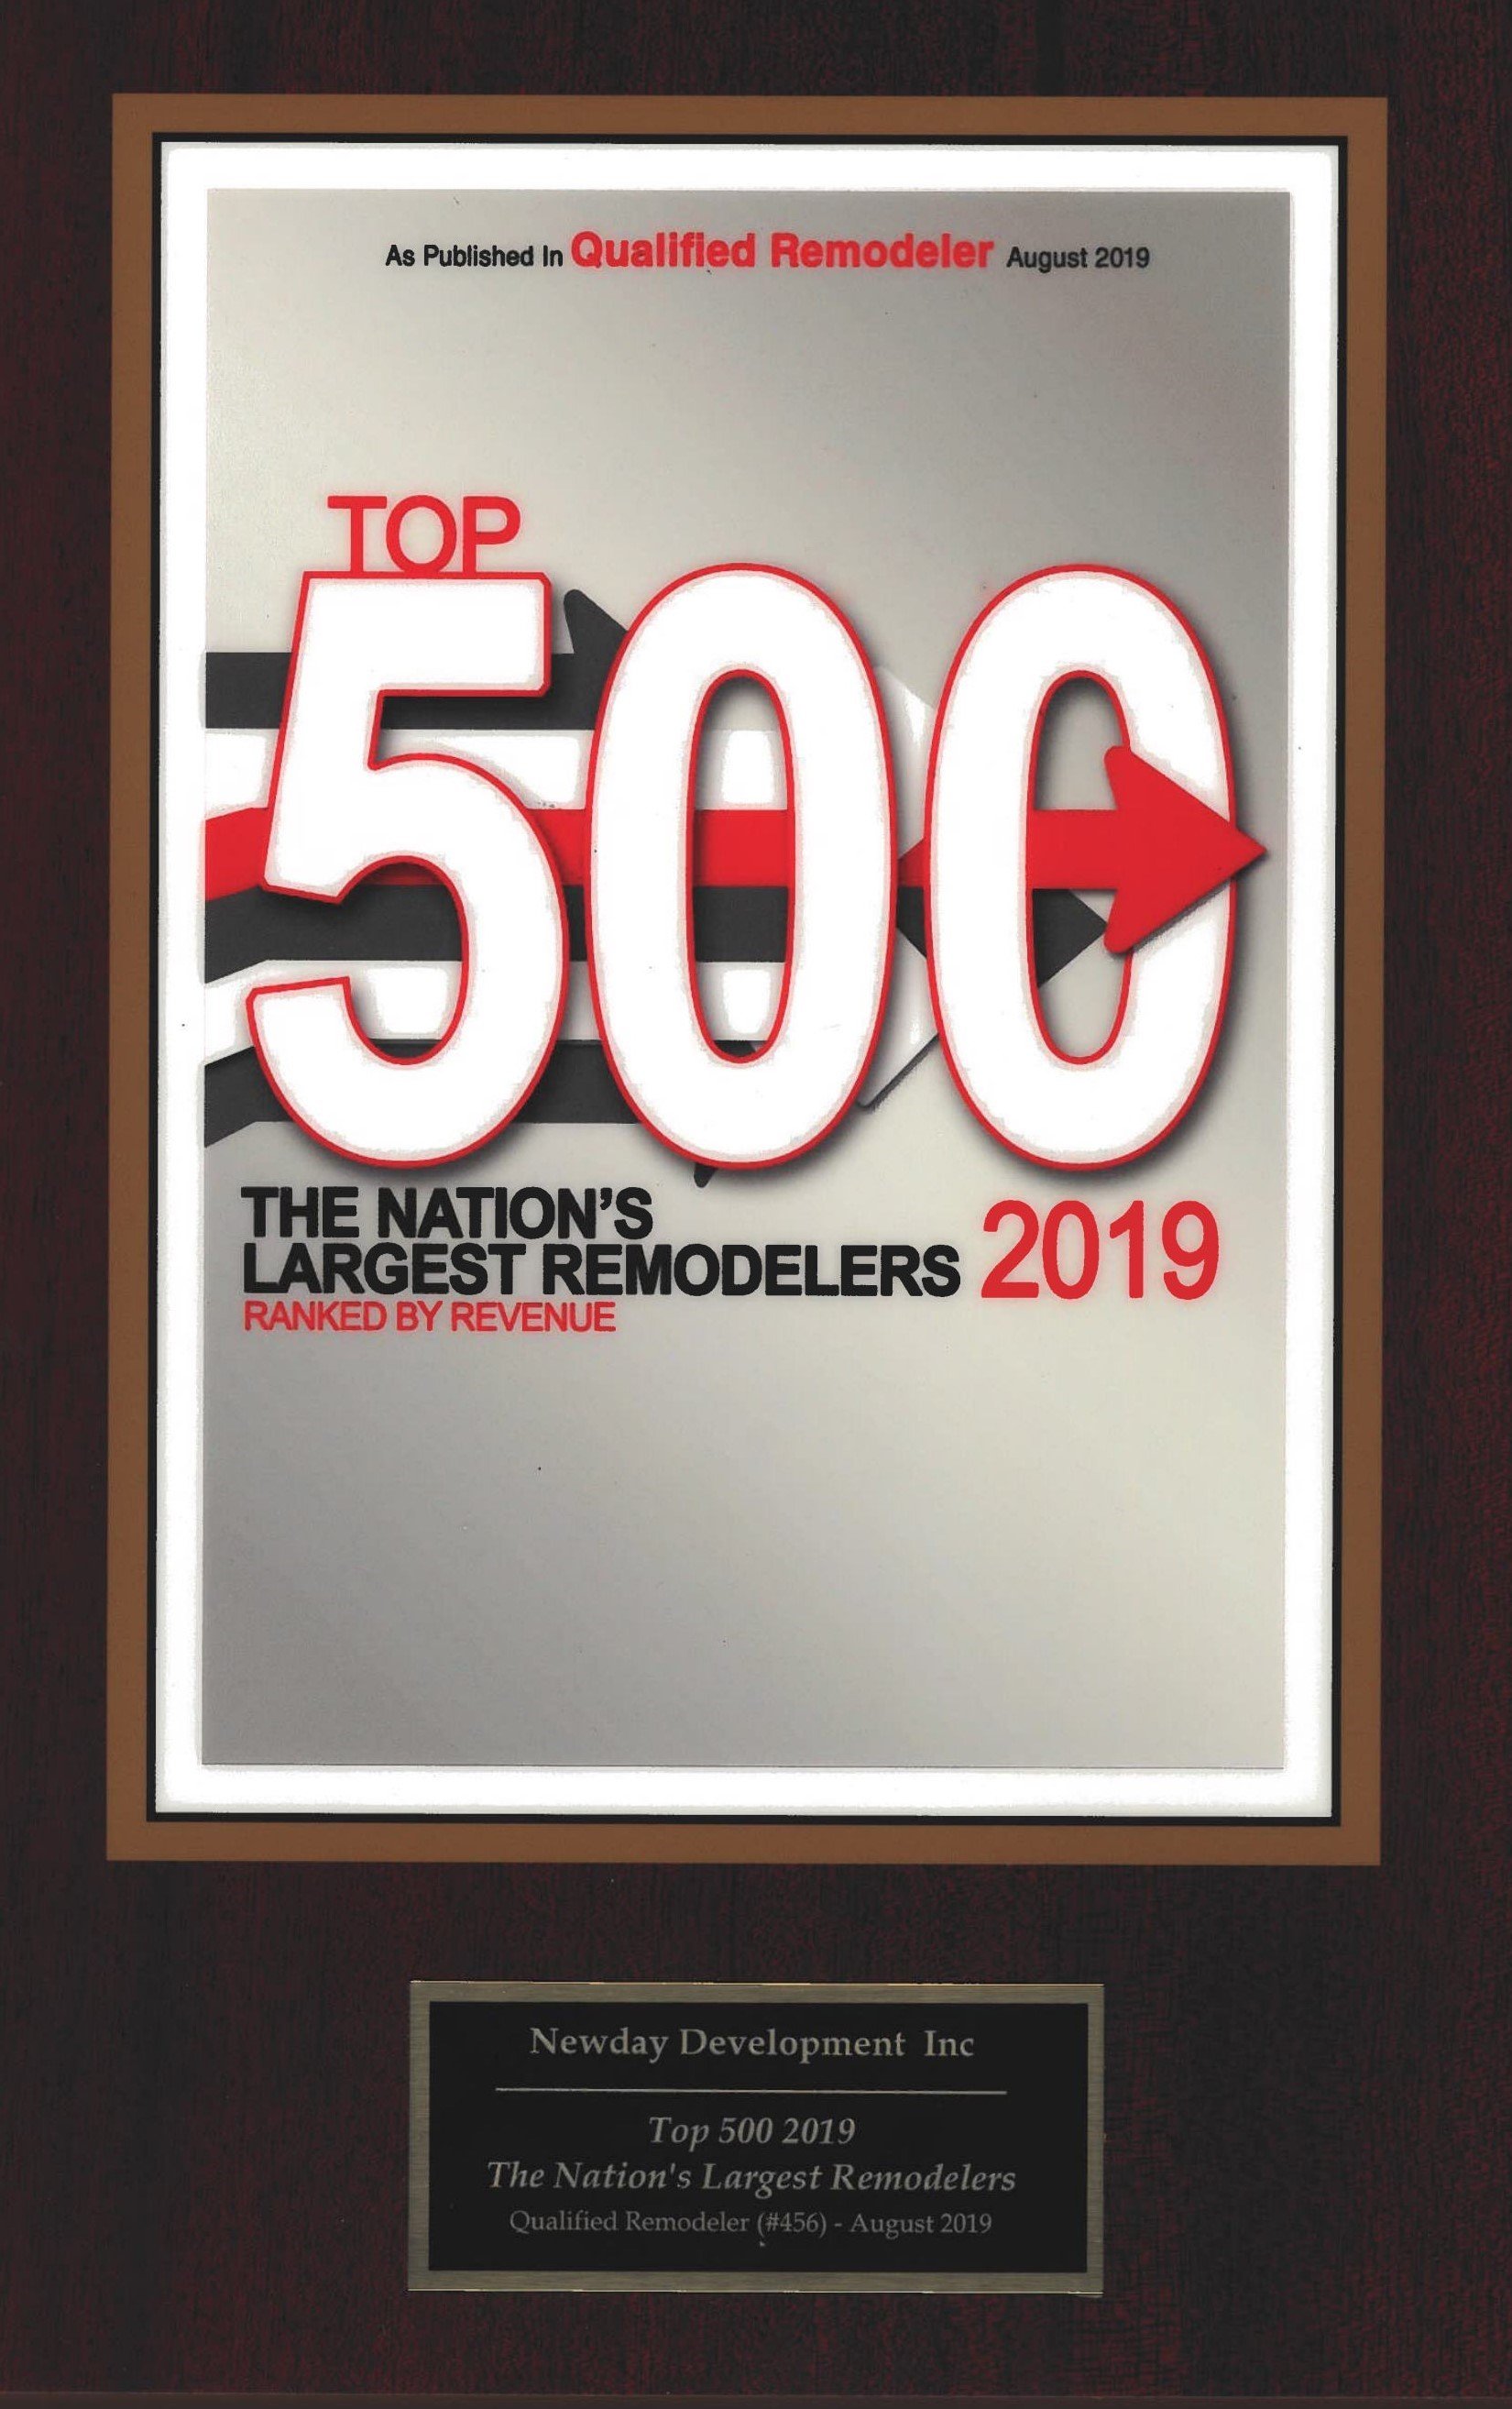 Qualified Remodeler Top 500 firms –